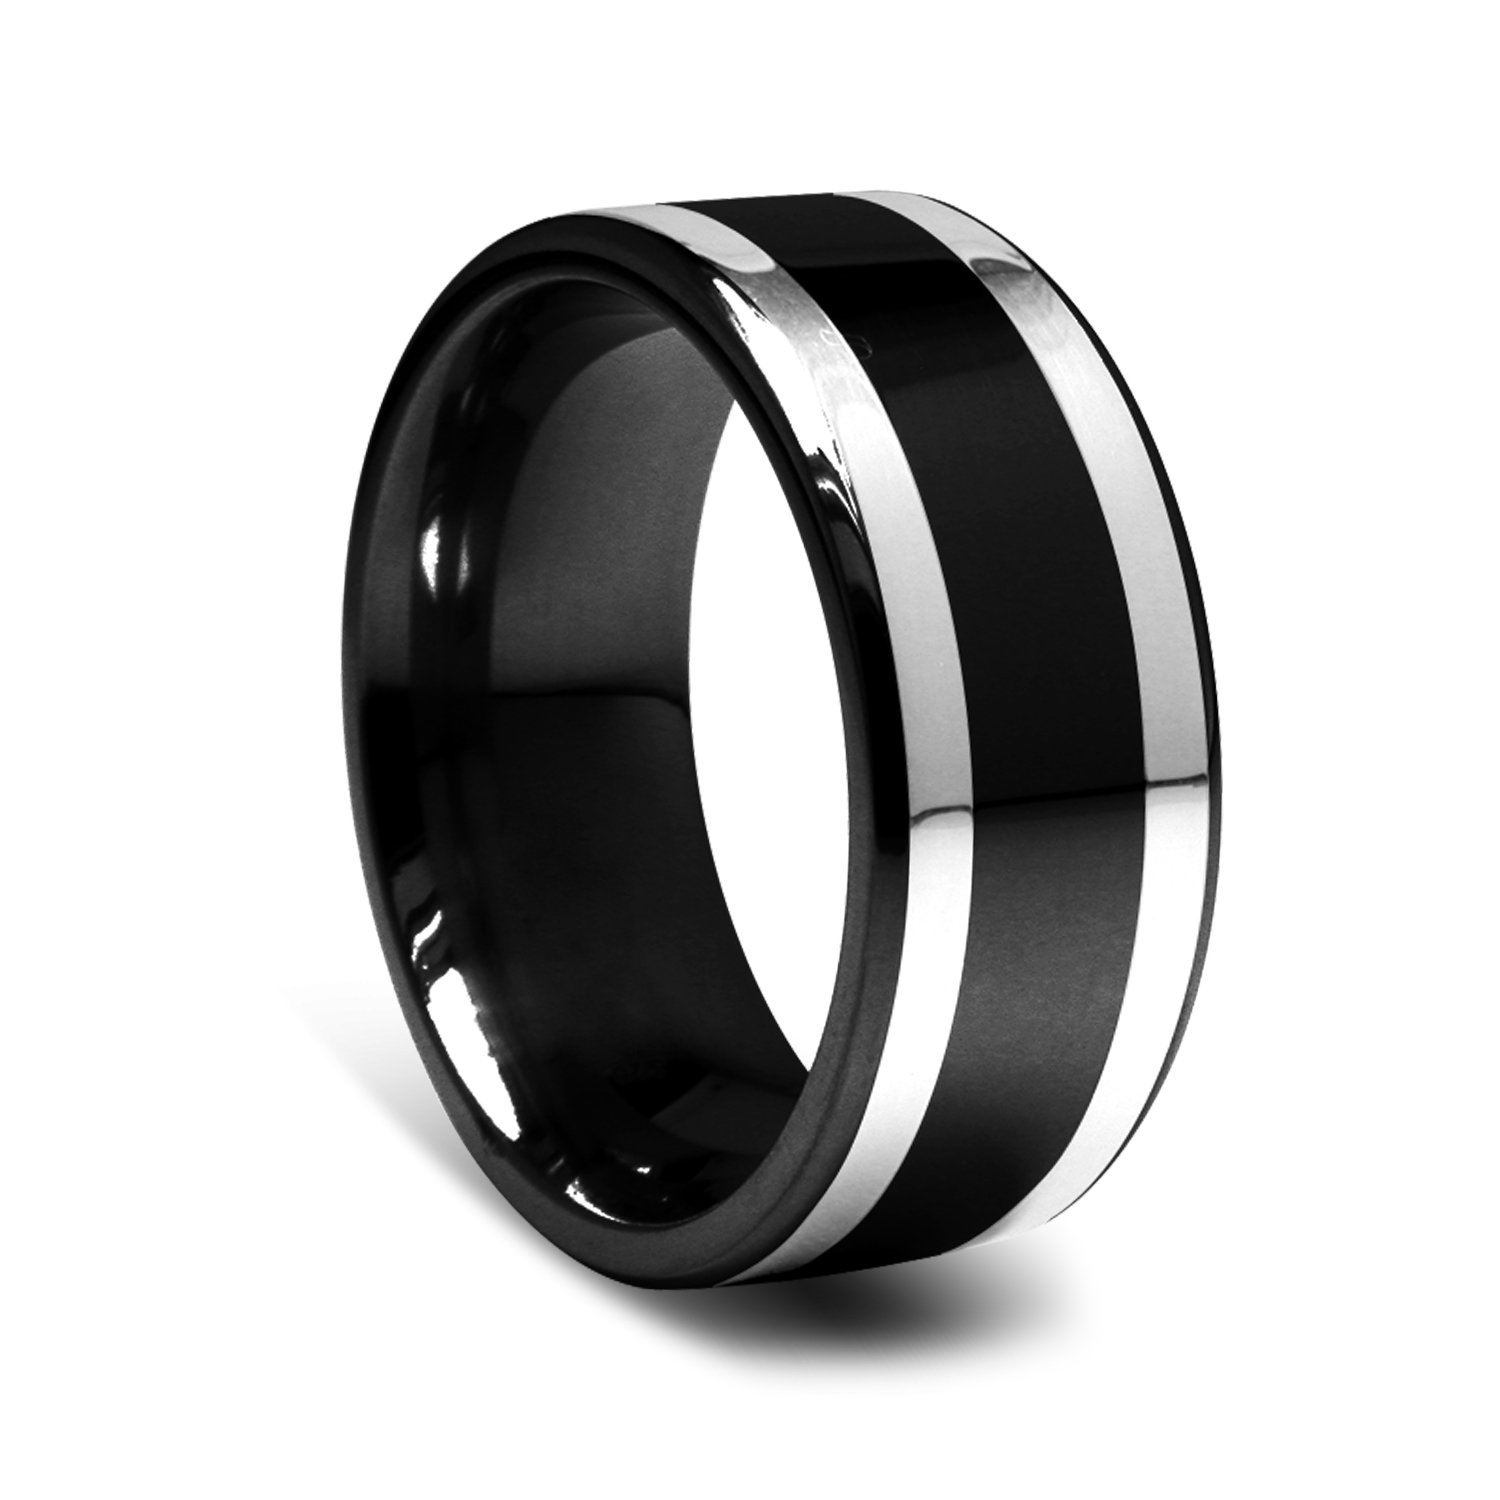 men band platinum rings plated buy for karatcart elegant mens bands couple india b in prices ring online best at adjustable women